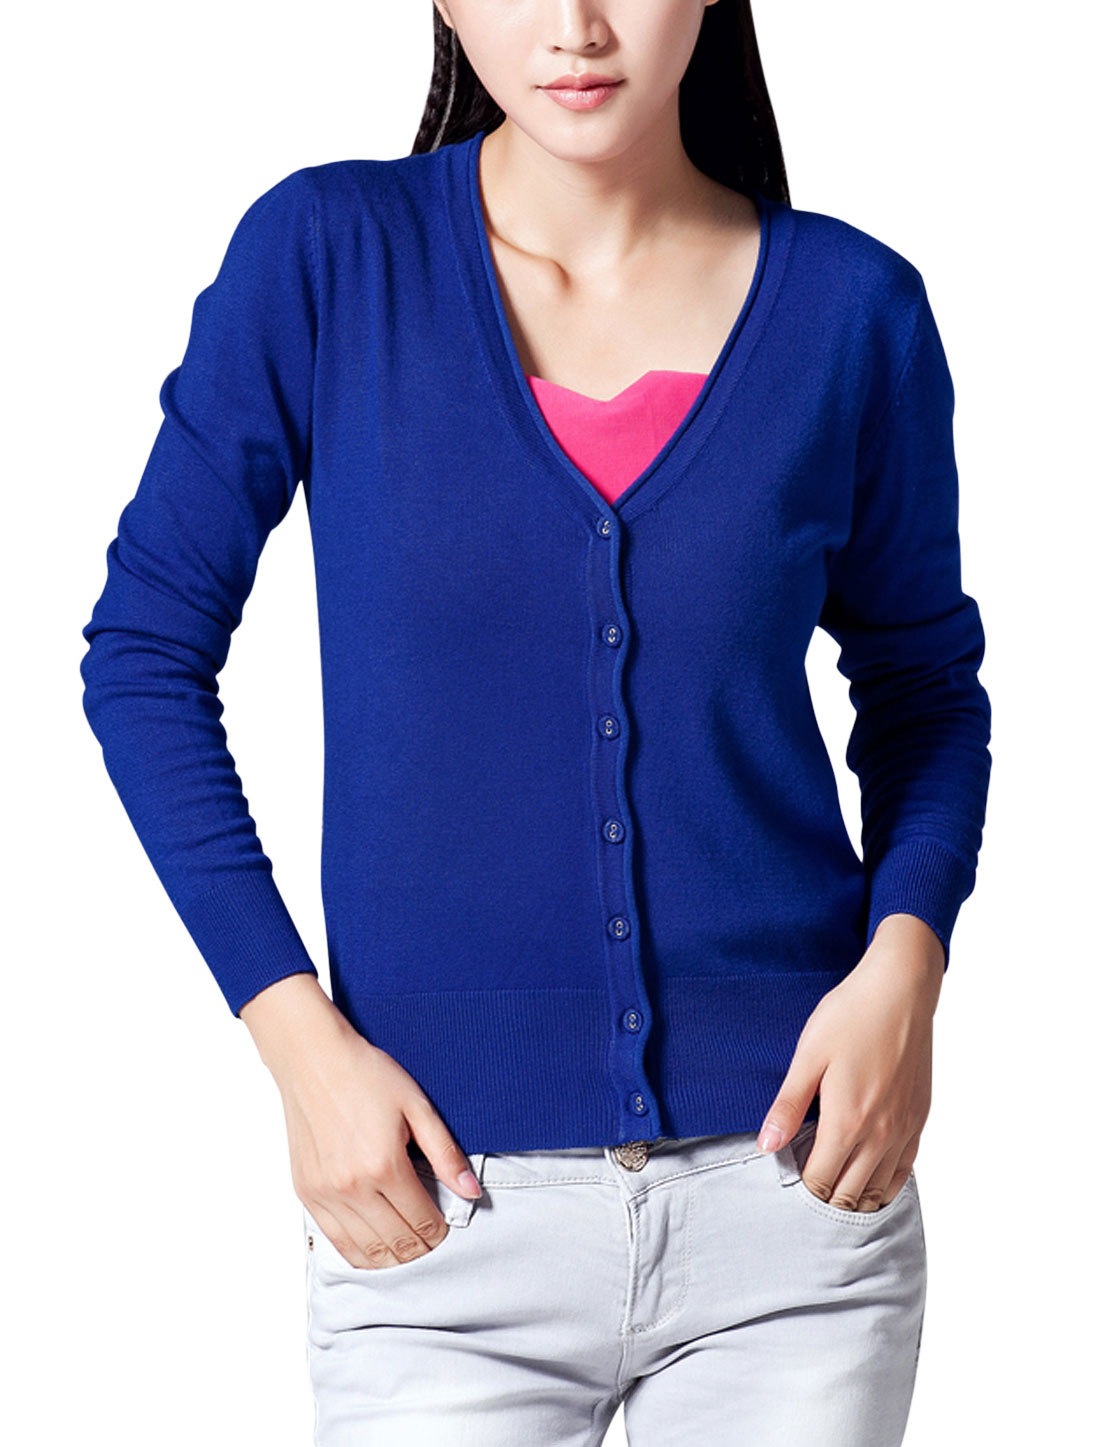 Lady Long Raglan Sleeve Cozy Fit Knit Cardigan Royal Blue M